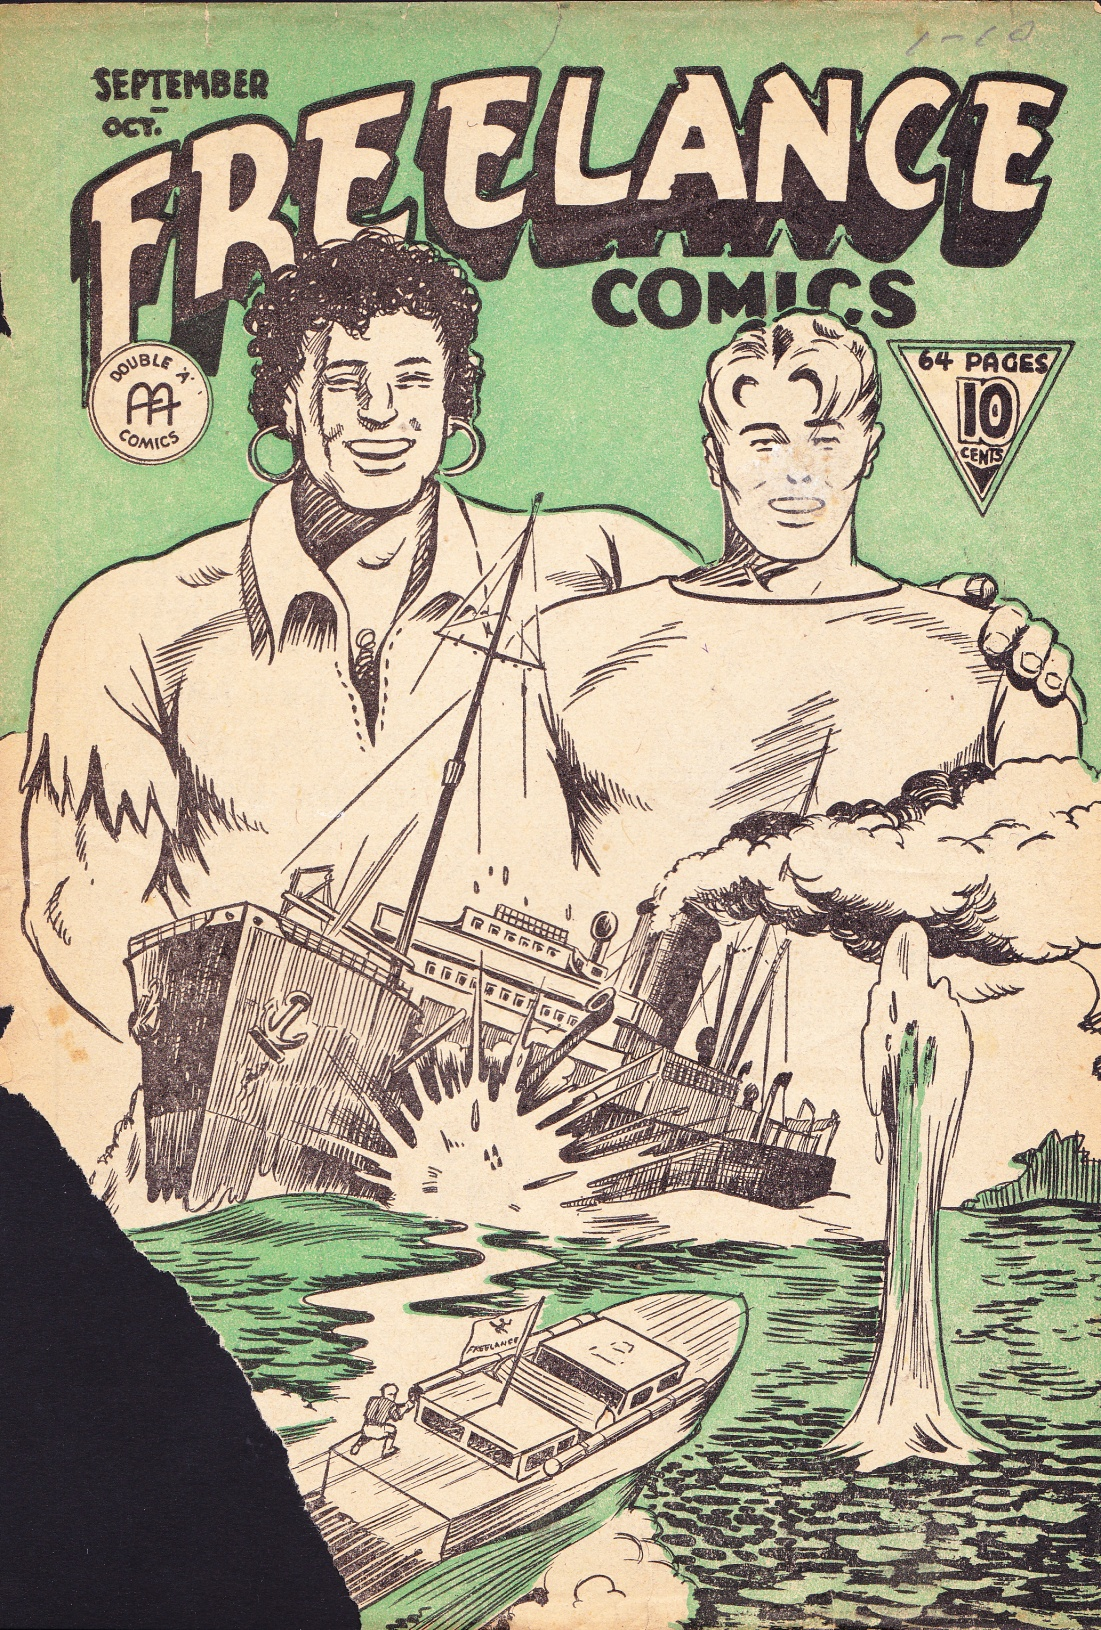 C:\Users\Robert\Documents\CARTOONING ILLUSTRATION ANIMATION\IMAGE CARTOON\IMAGE CARTOON F\FREELANCE Freelance Comics 1-10 Sept.-Oct. 1942 fc.jpg